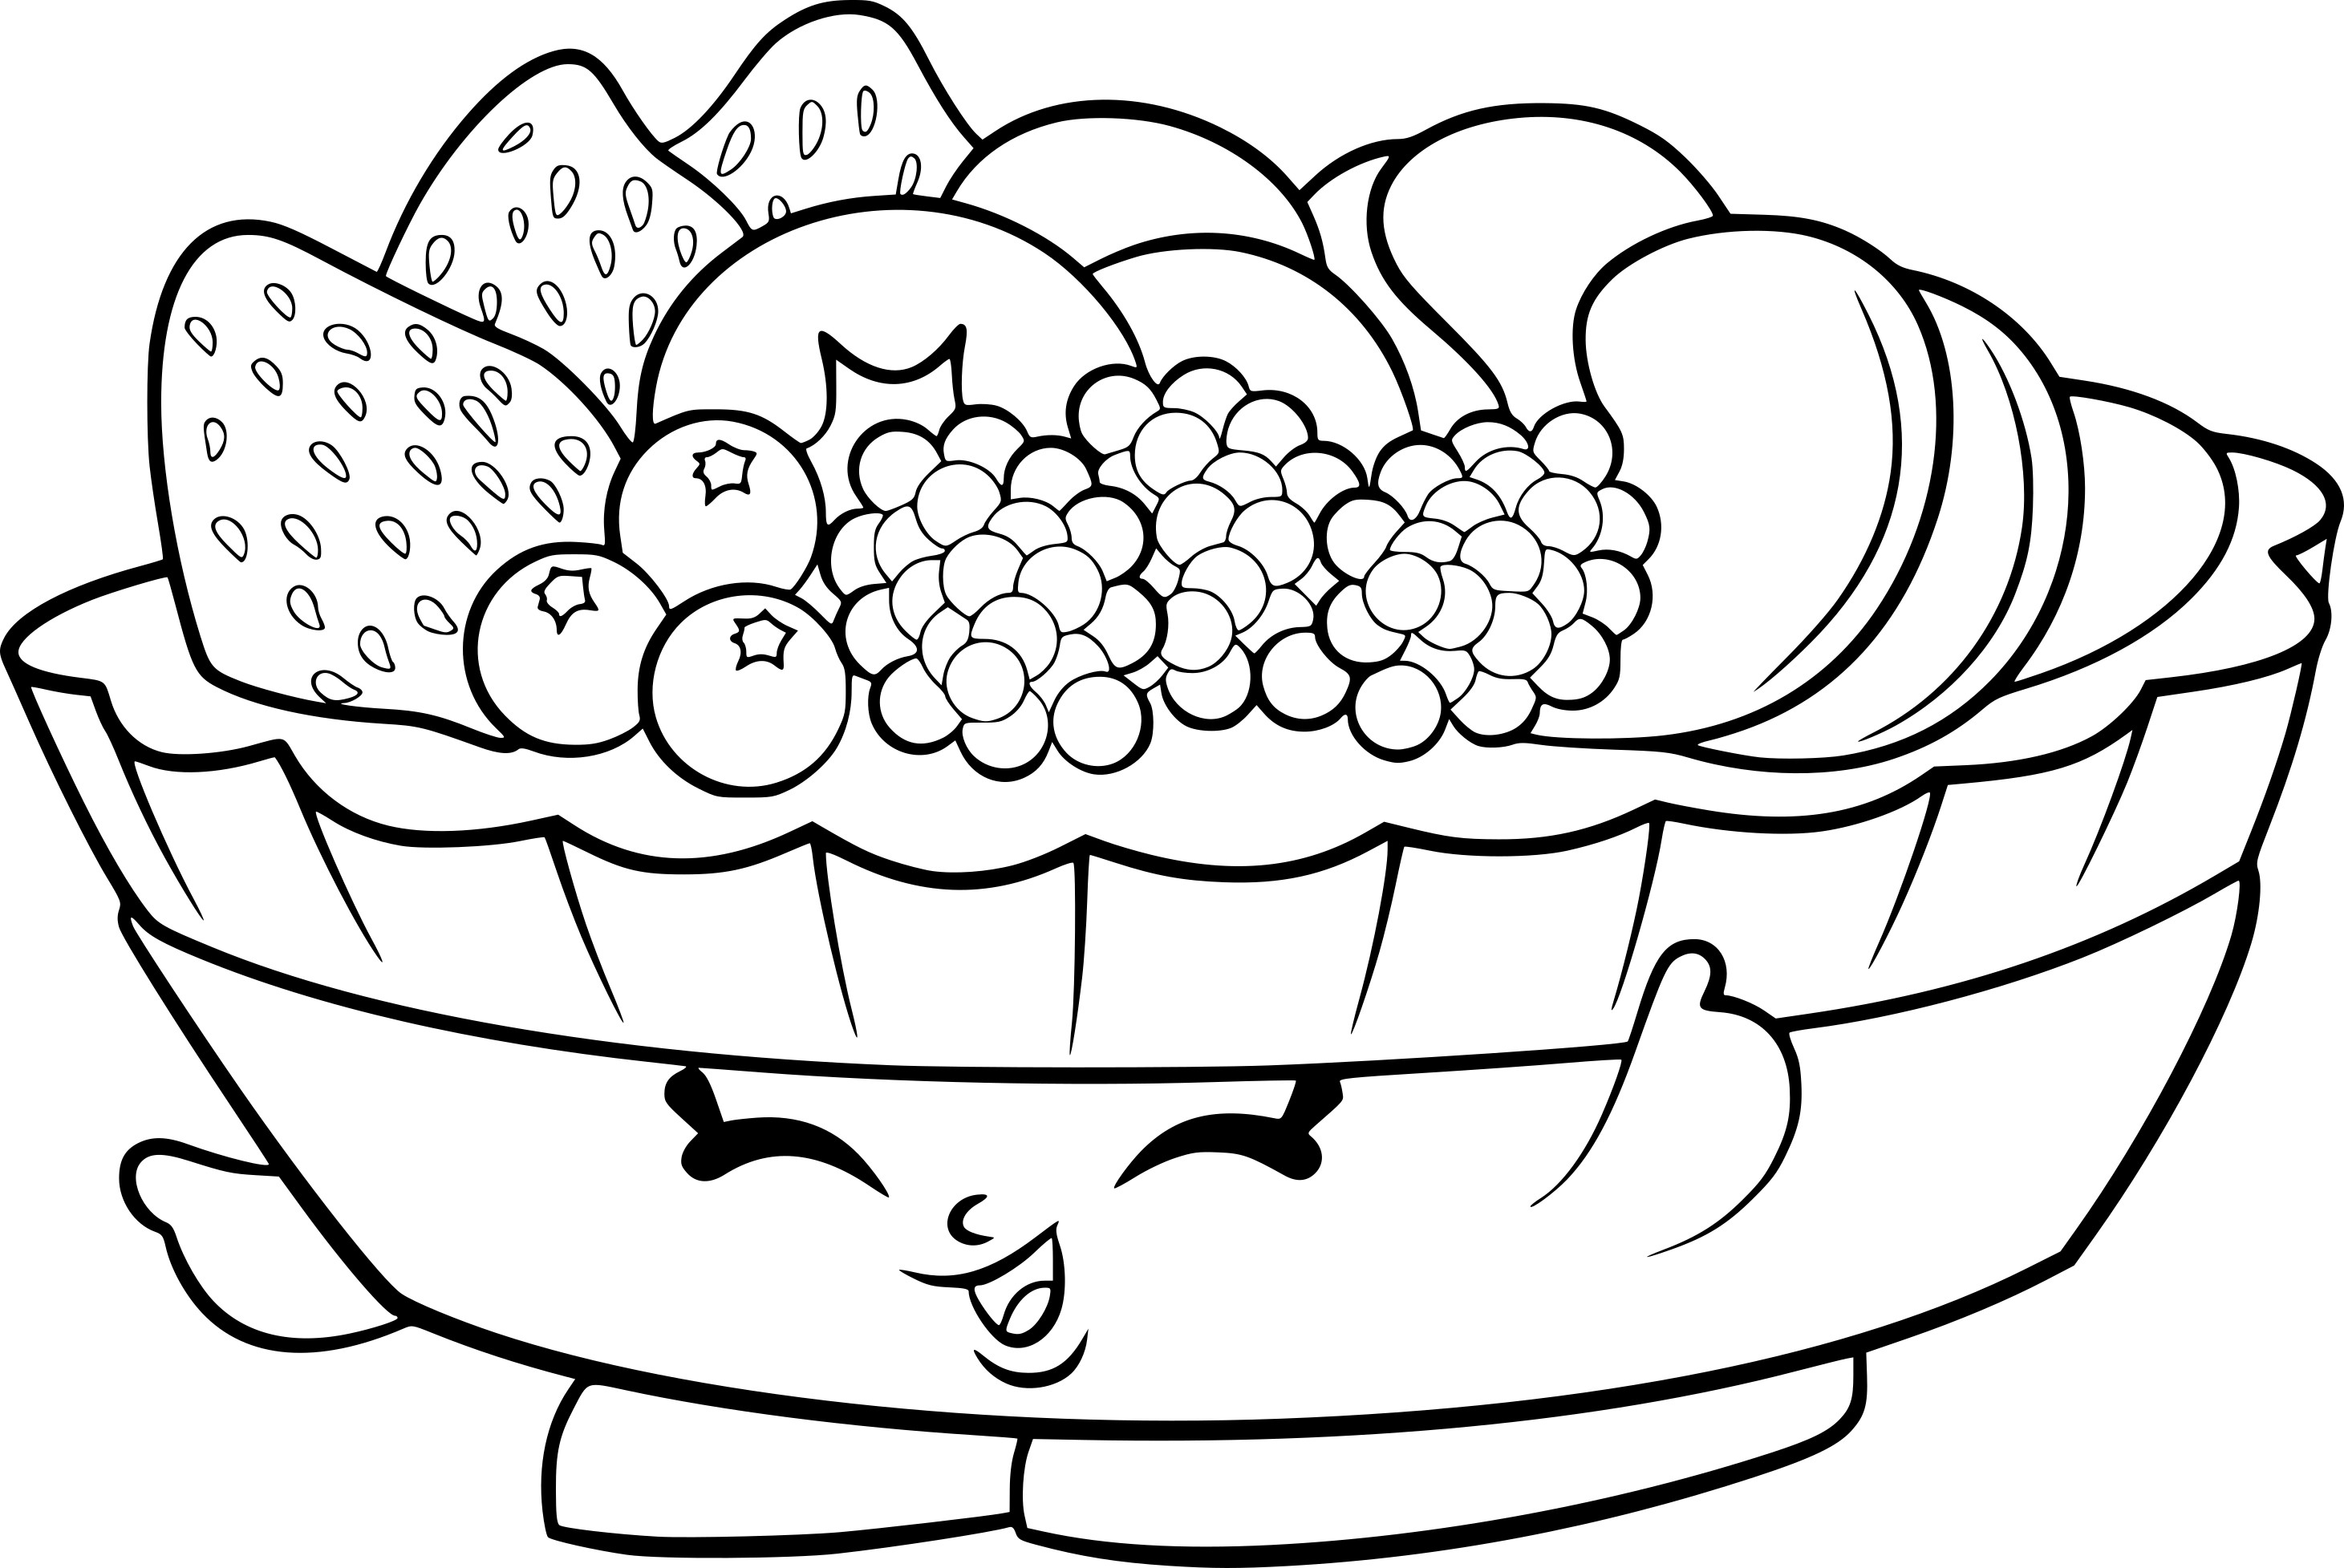 Coloriage fruits shopkins imprimer sur coloriages info - Fruits a colorier et a imprimer ...